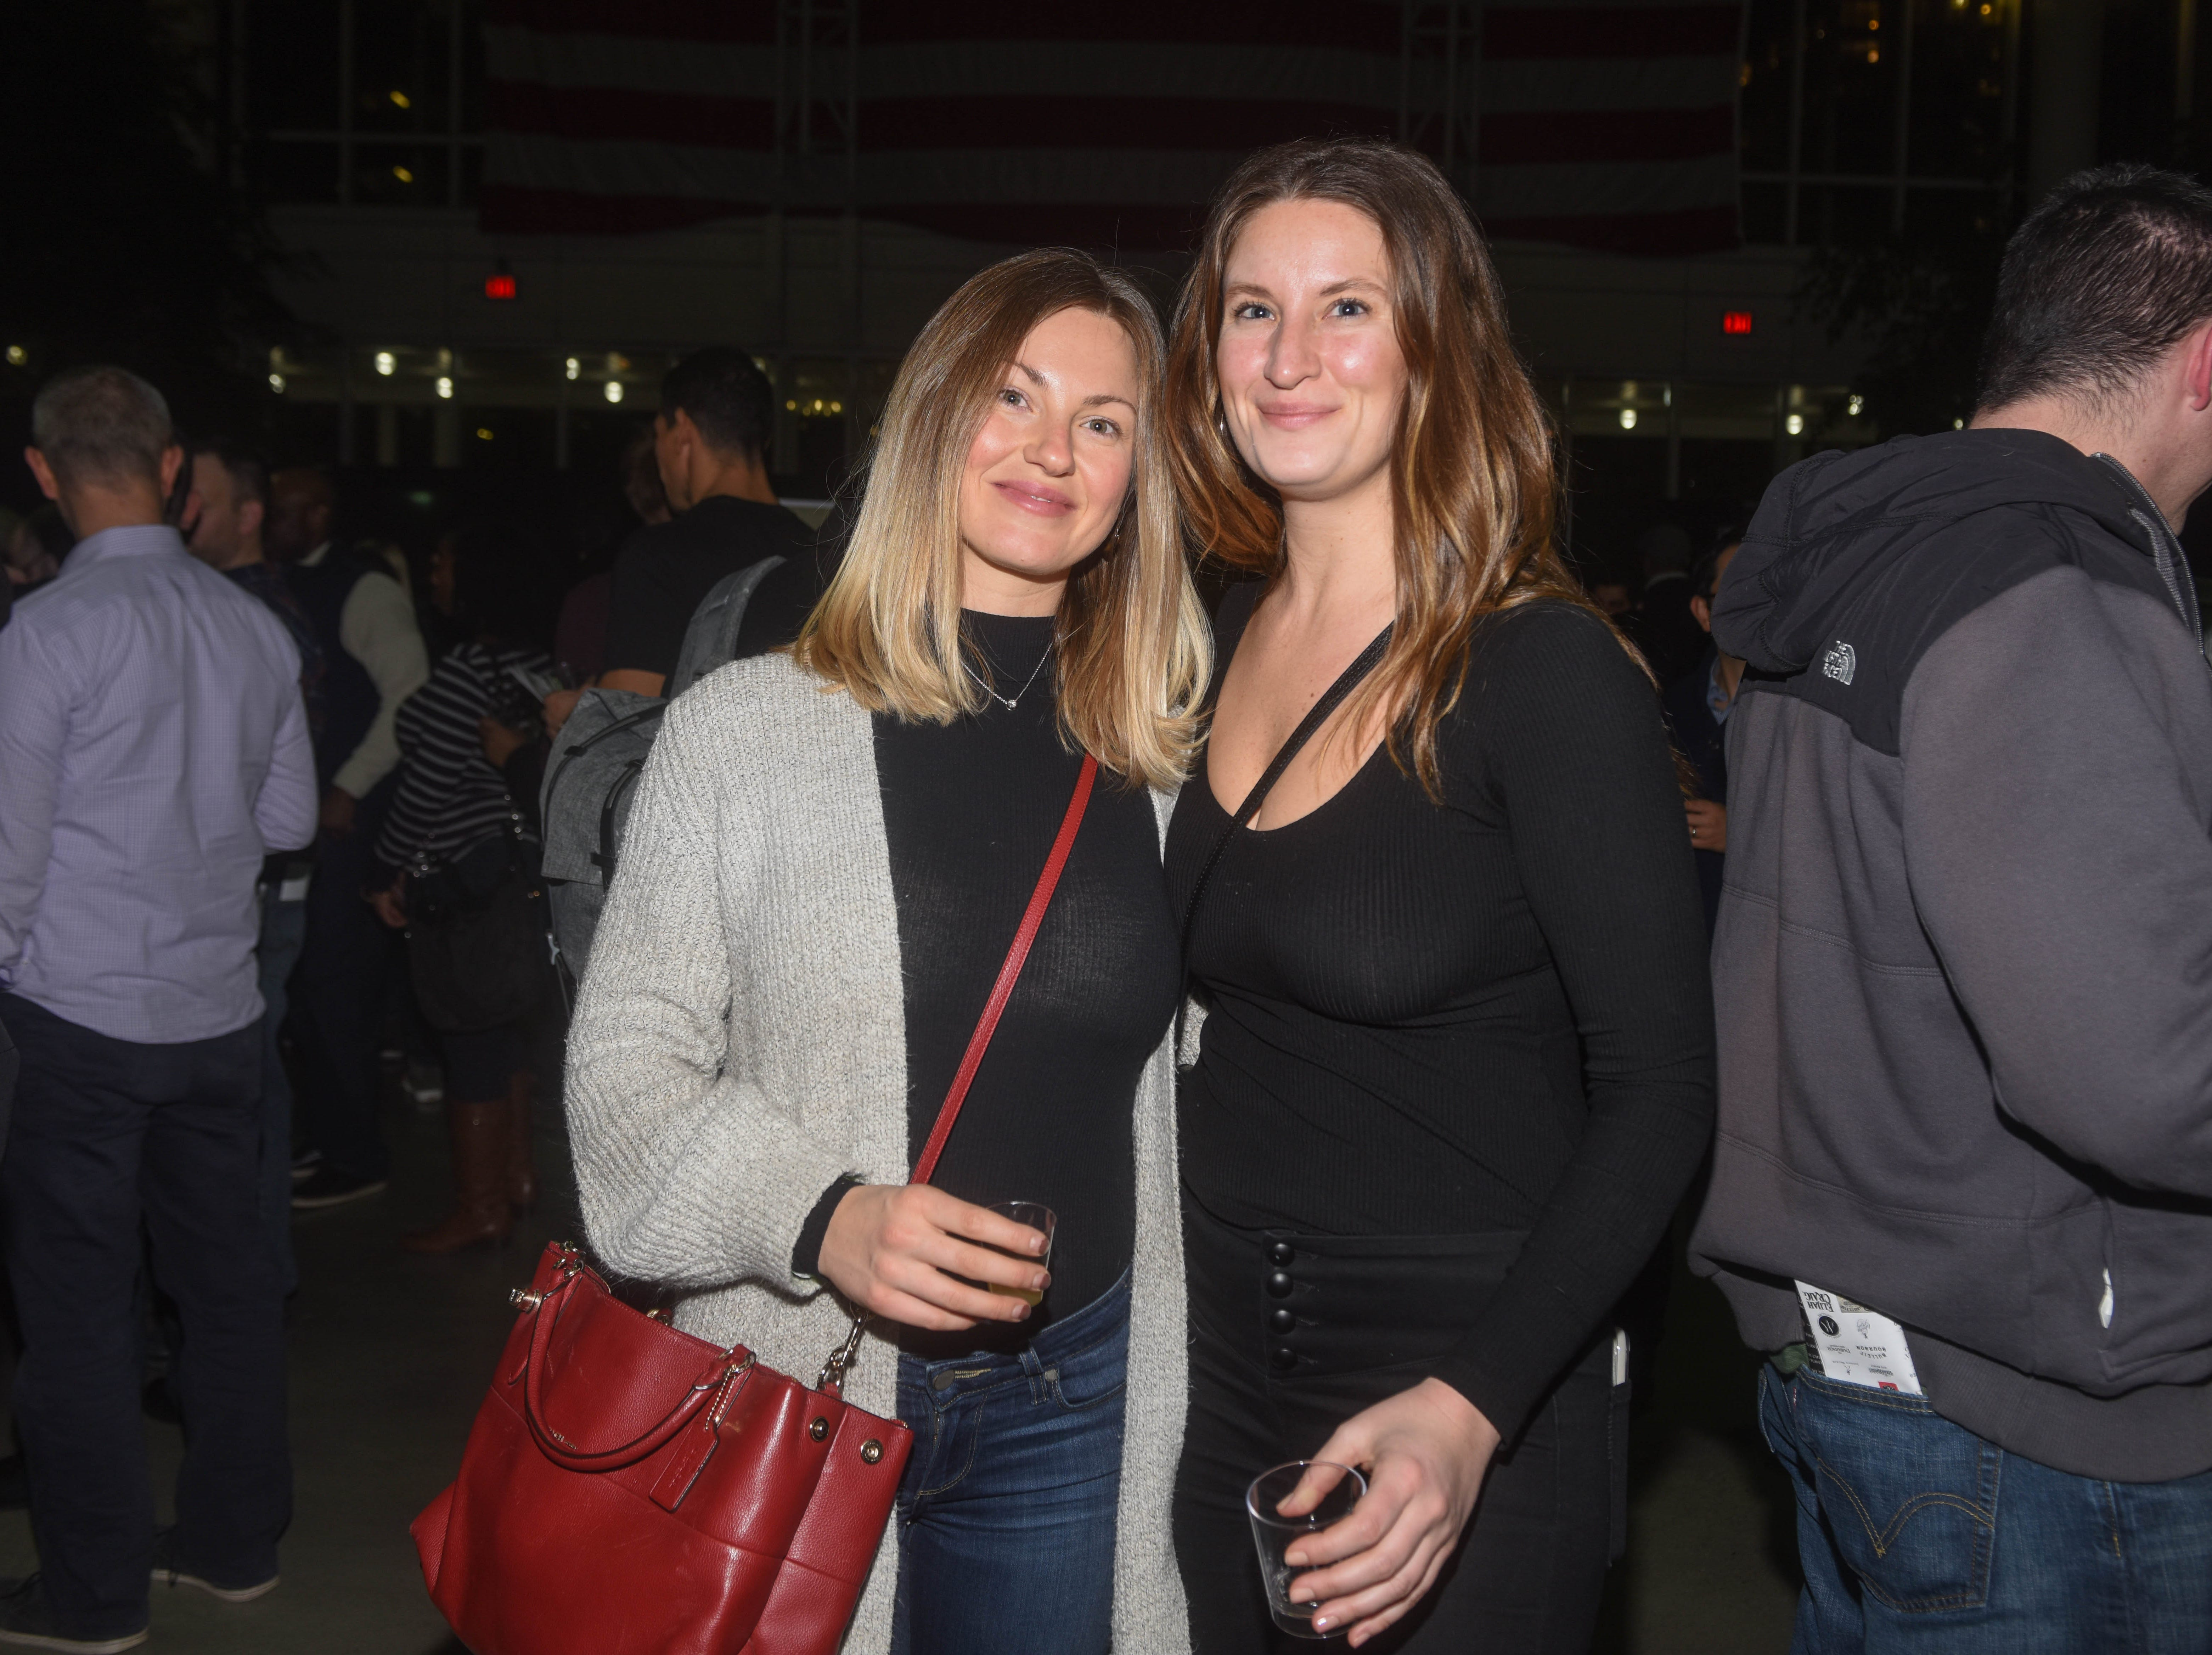 Beth Tomlinson and Rachel Huffine. Jersey City Whiskey Fest was held at Harborside Atrium. The event featured over 100 styles of whiskey and spirits. 02/01/2019